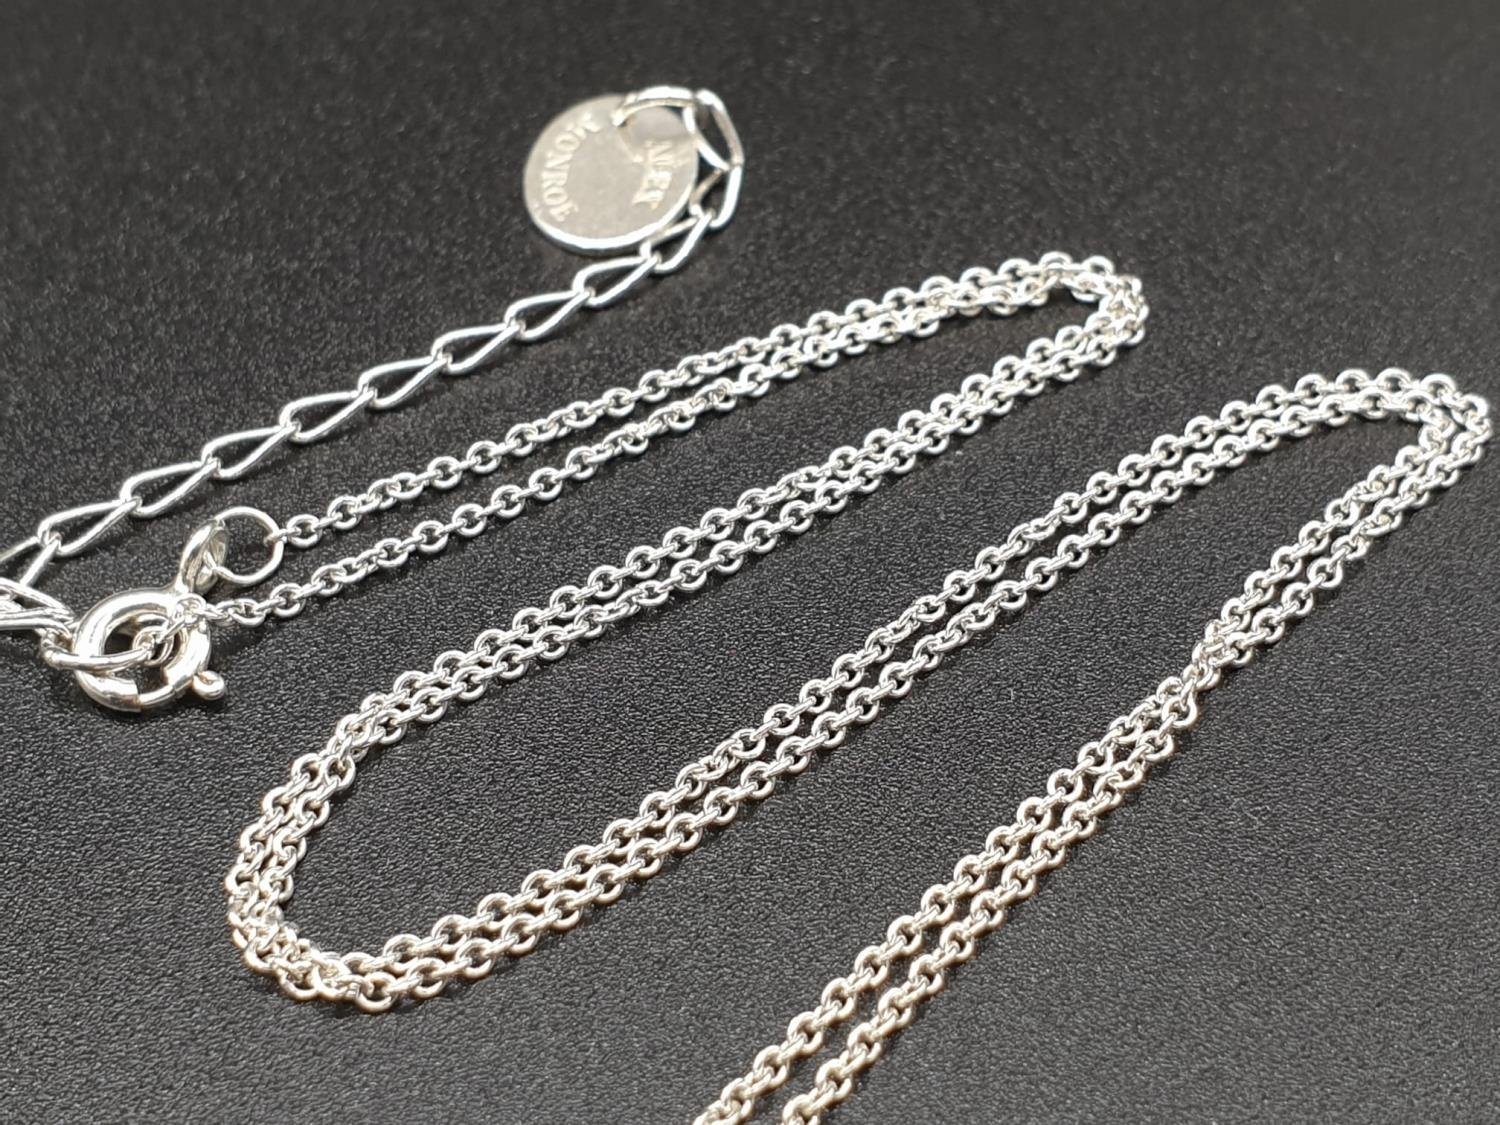 ALEX MONROE STERLING SILVER BIG FEATHER PENDANT ON EXTENDABLE NECKLACE - Image 5 of 6